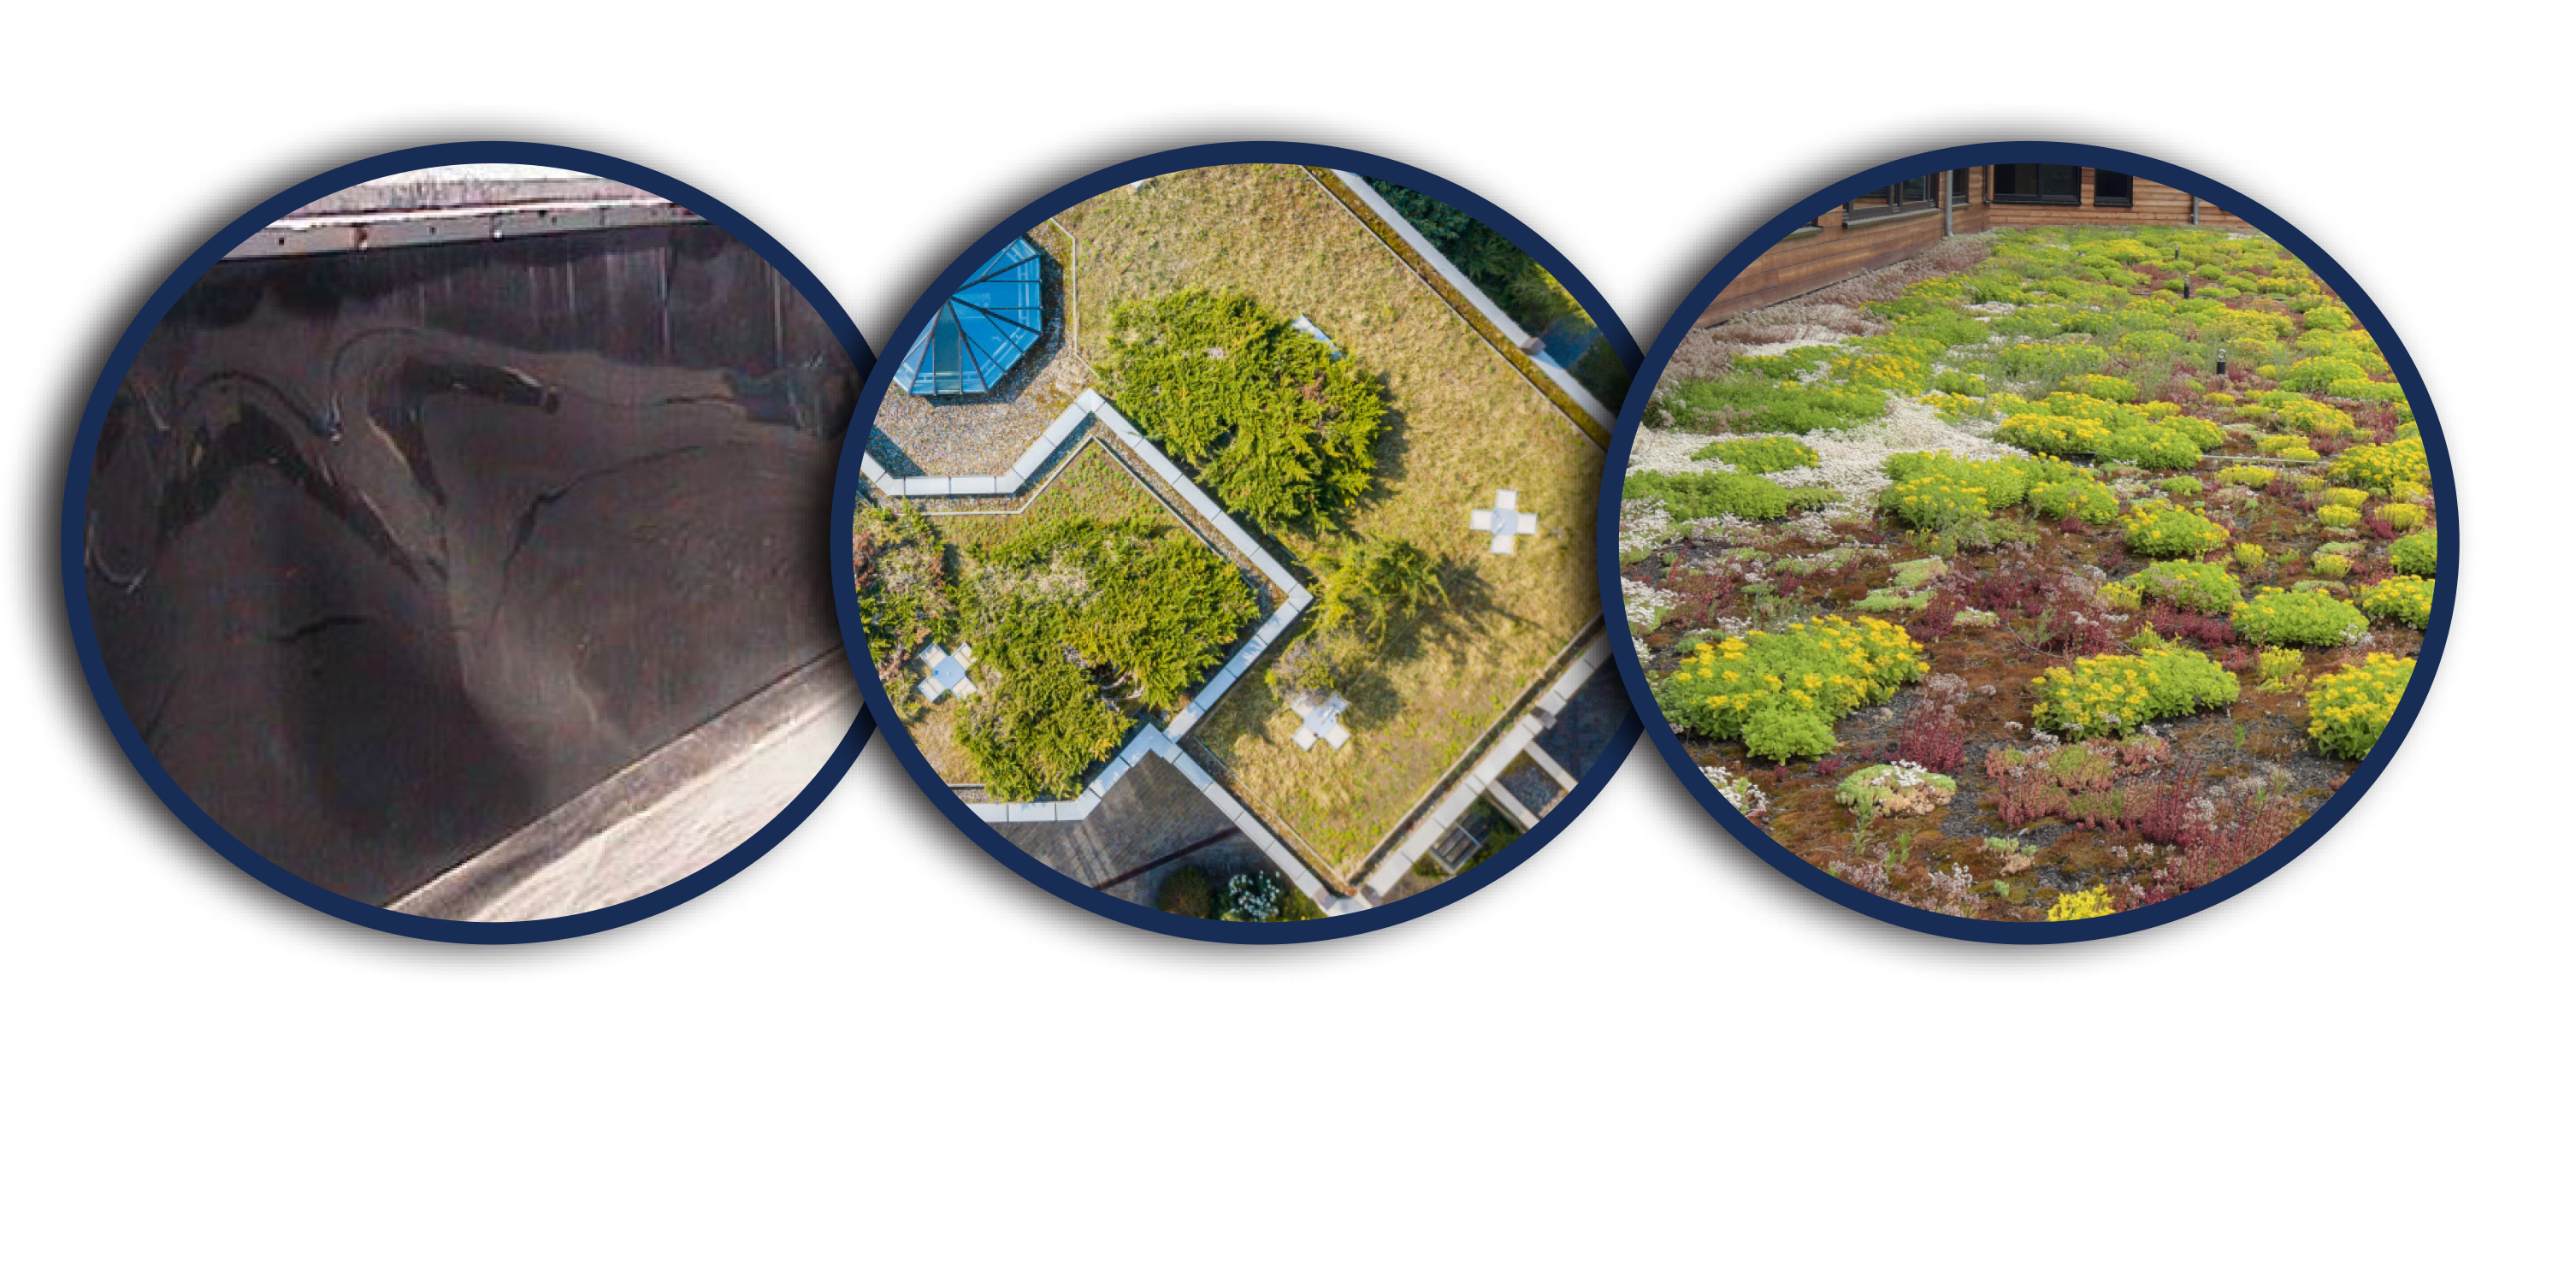 Green-Roof-Web-Images_03